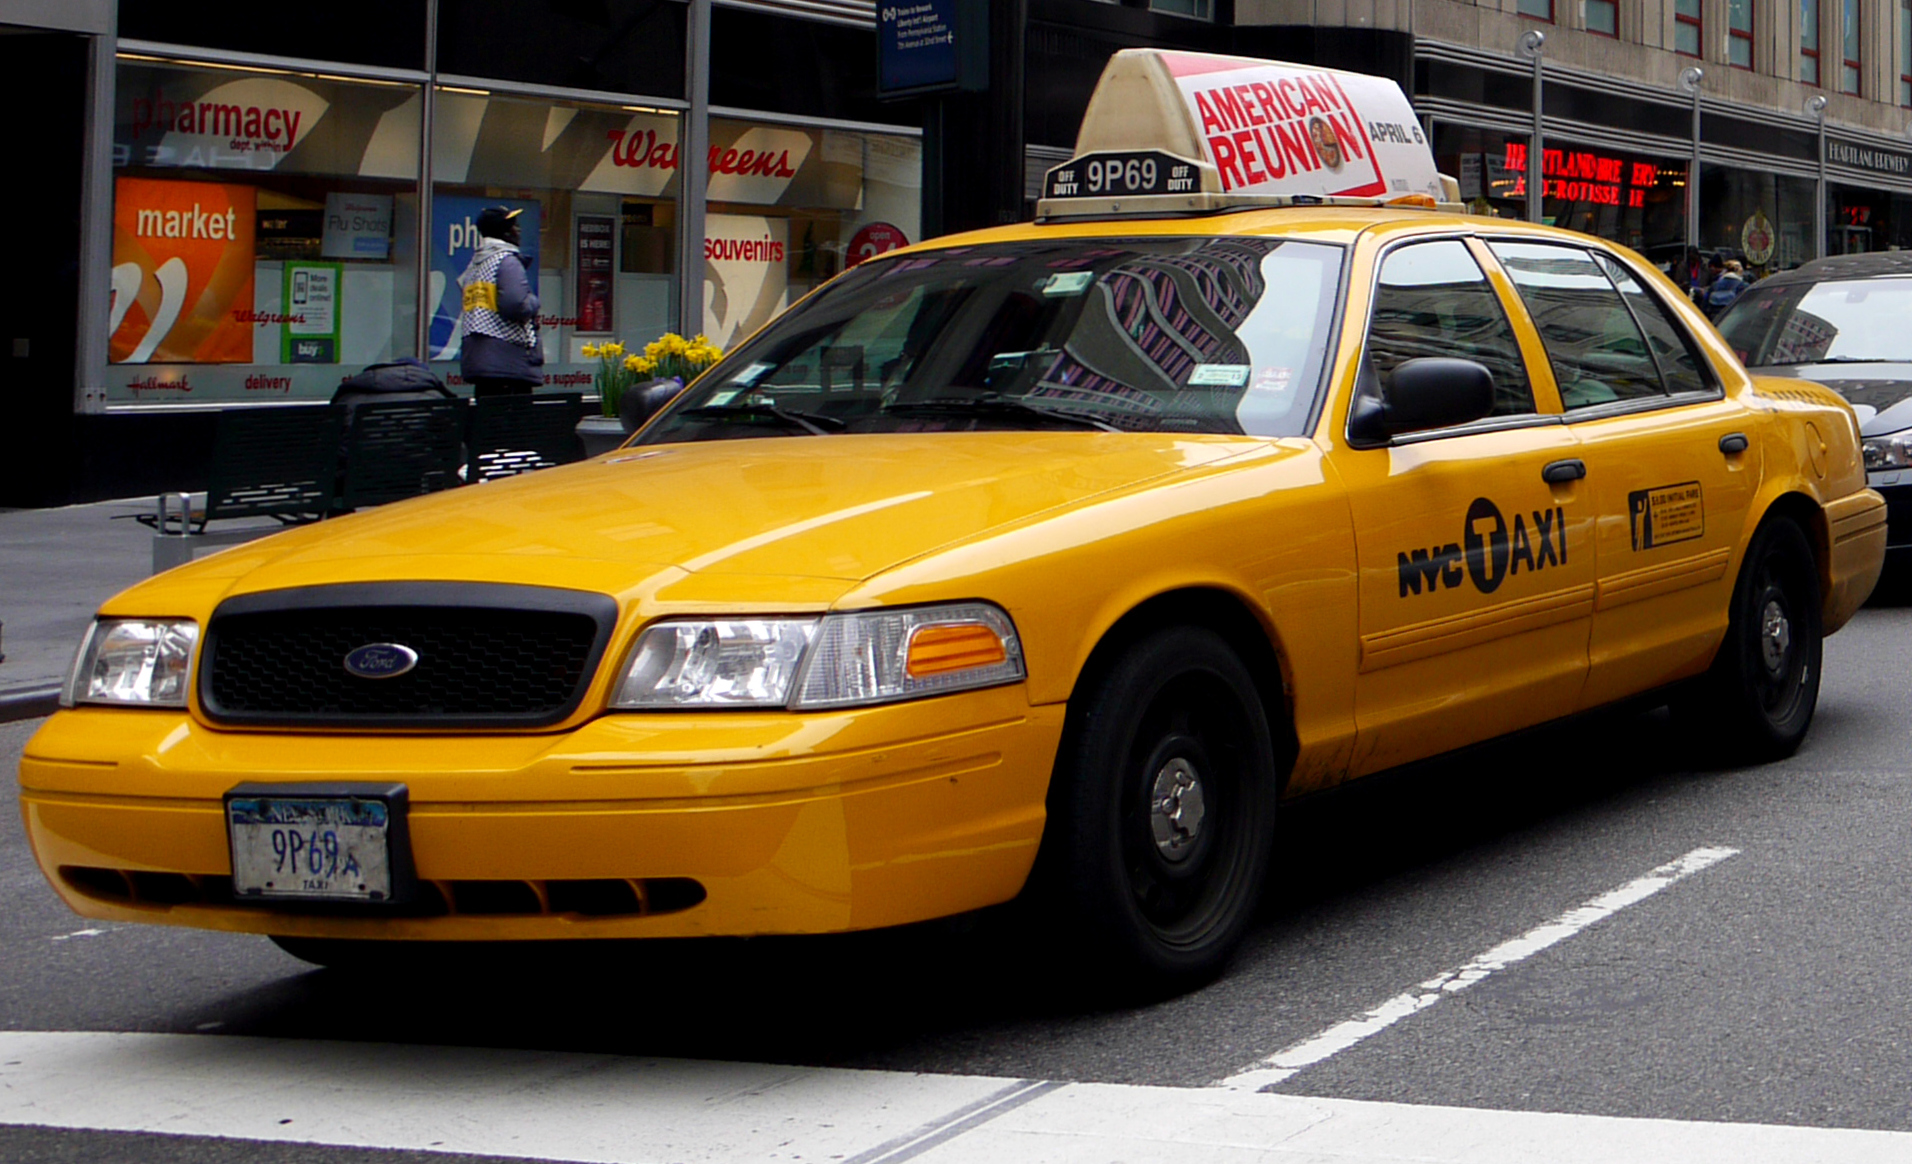 The Taxi